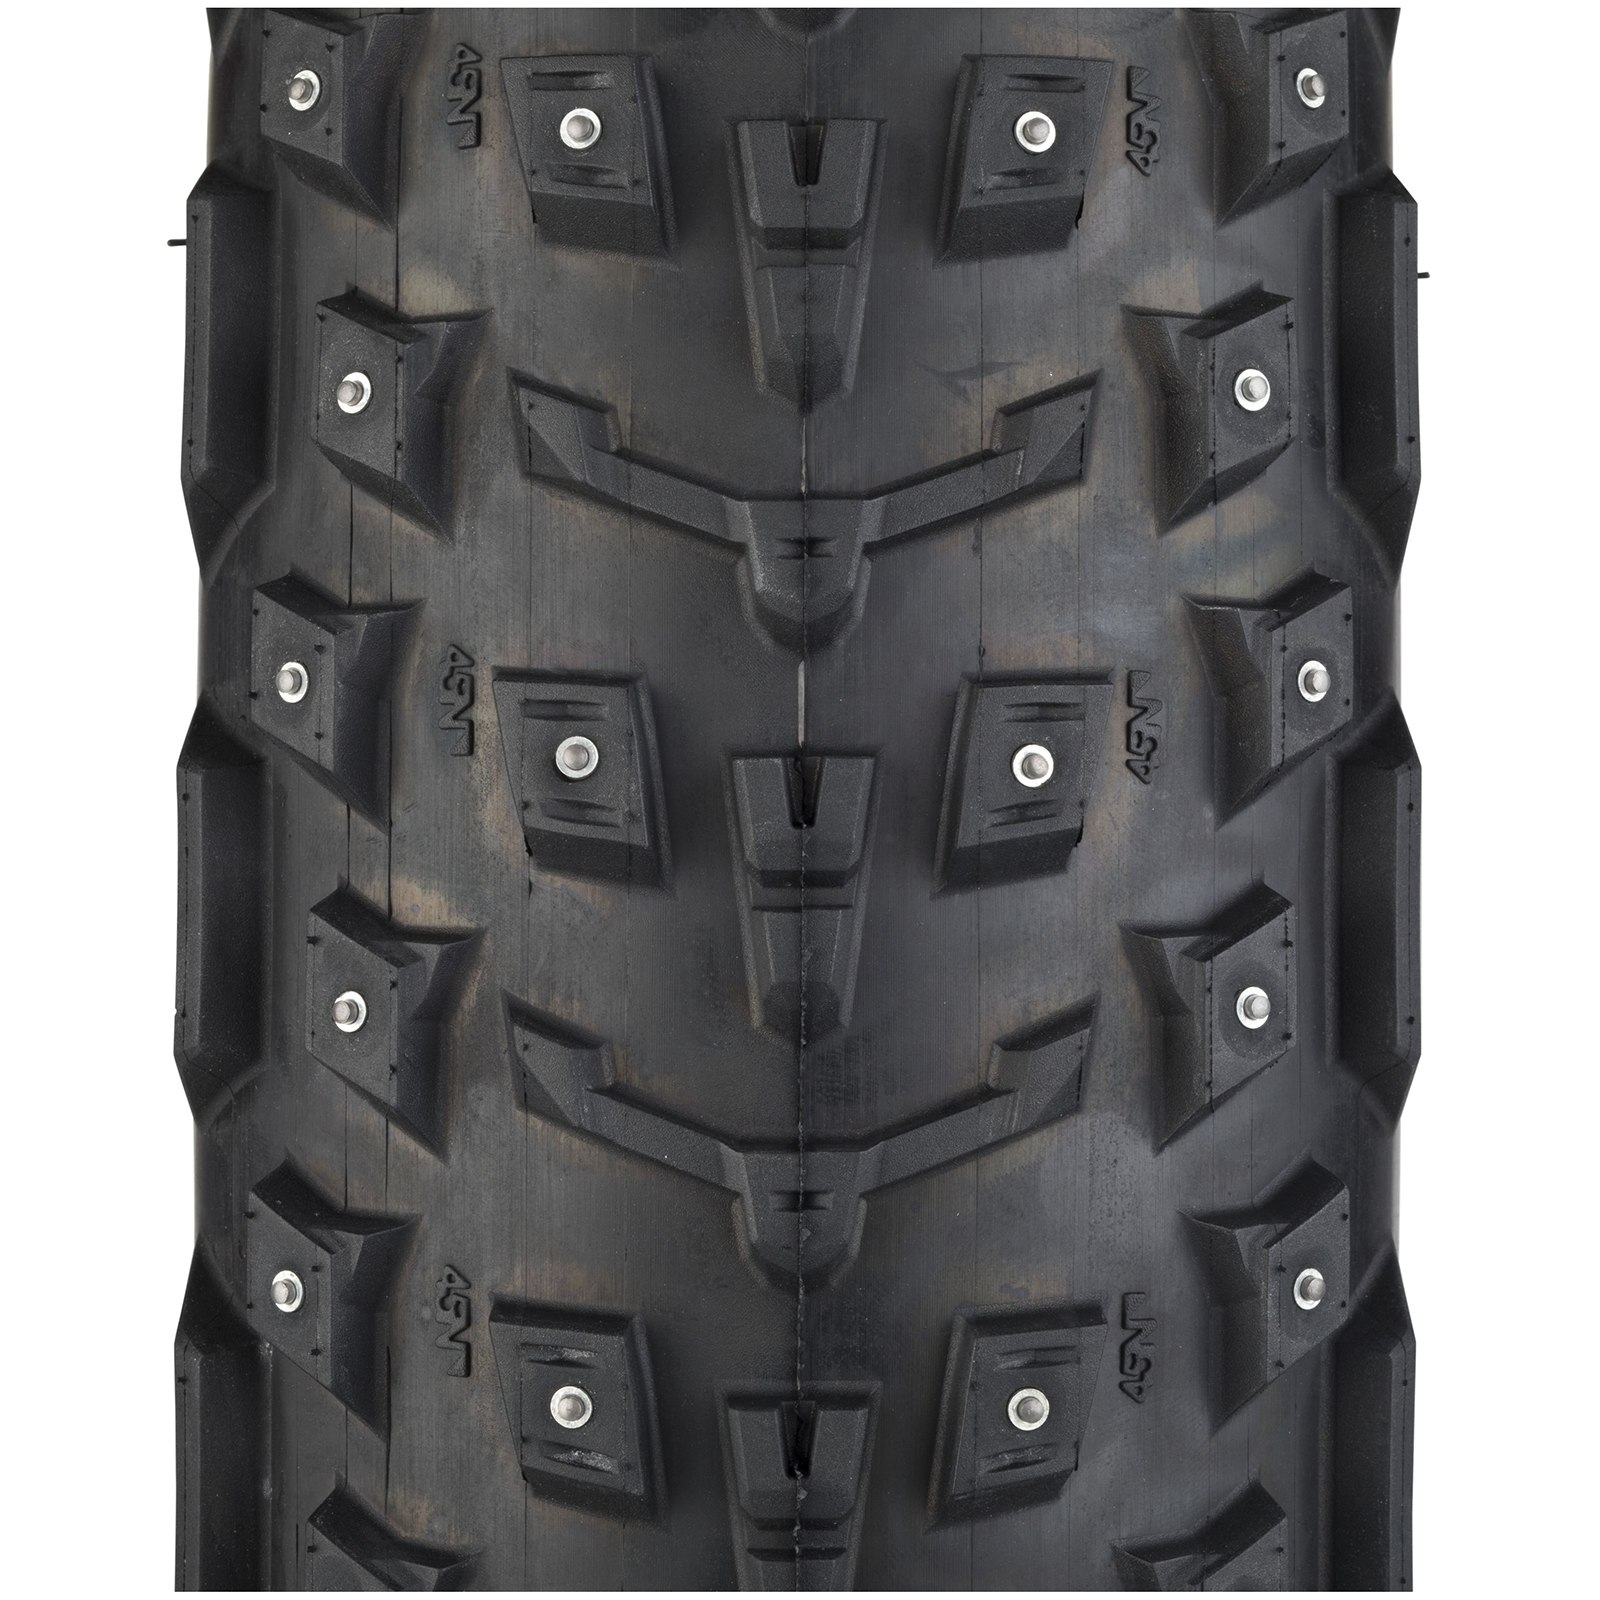 Imagen de 45NRTH Dillinger 4 Fatbike Folding Tire with 252 Studs - Tubeless Ready - 27.5x4.0 Inches - 60TPI